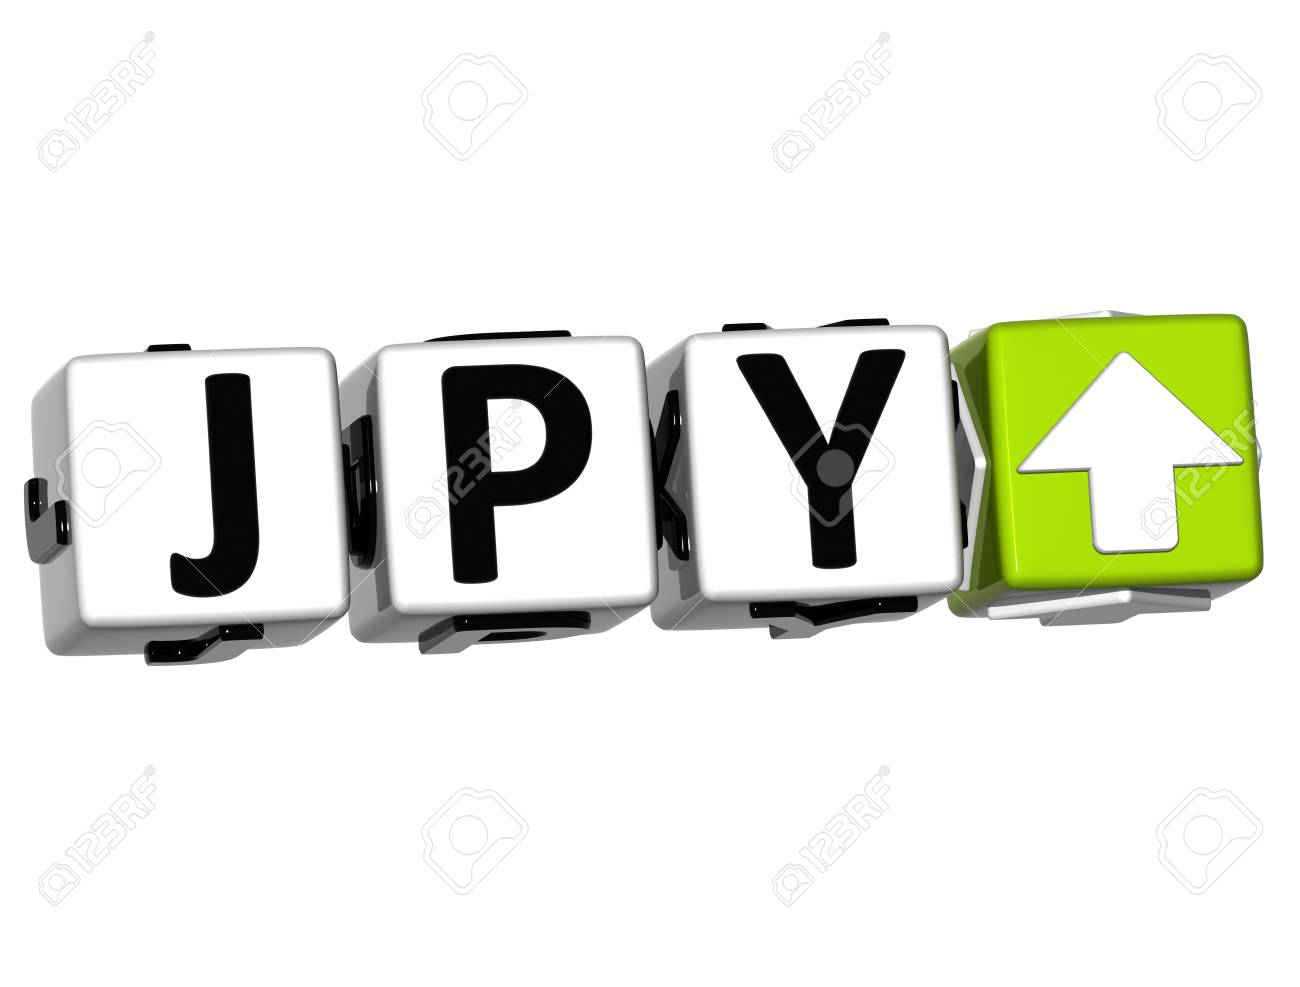 Currency symbol aed image collections symbols and meanings currency jpy rate concept symbol button on white background stock currency jpy rate concept symbol button buycottarizona Gallery